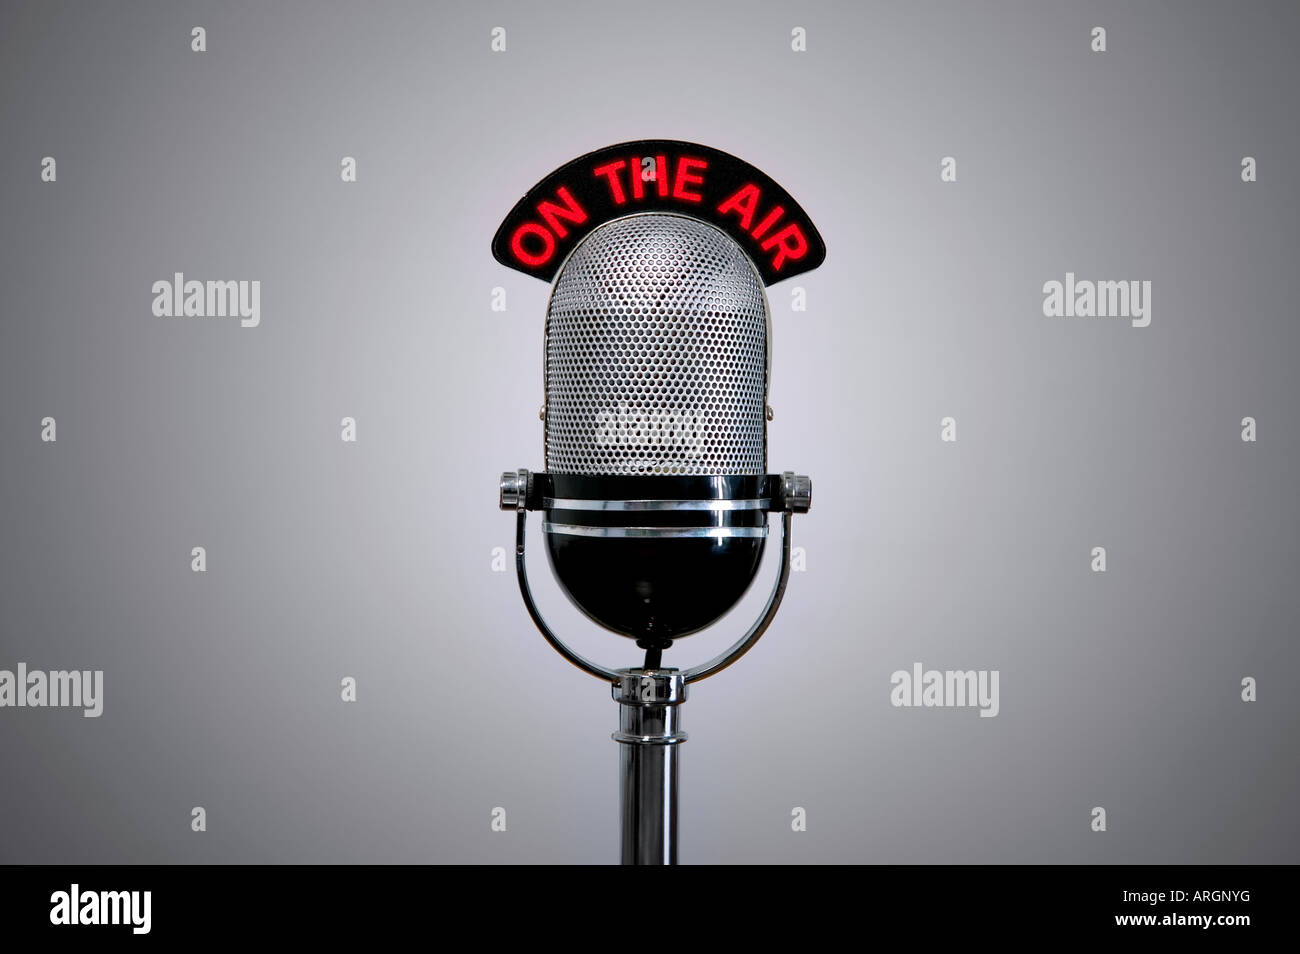 Old retro microphone with illuminated On the Air sign - Stock Image